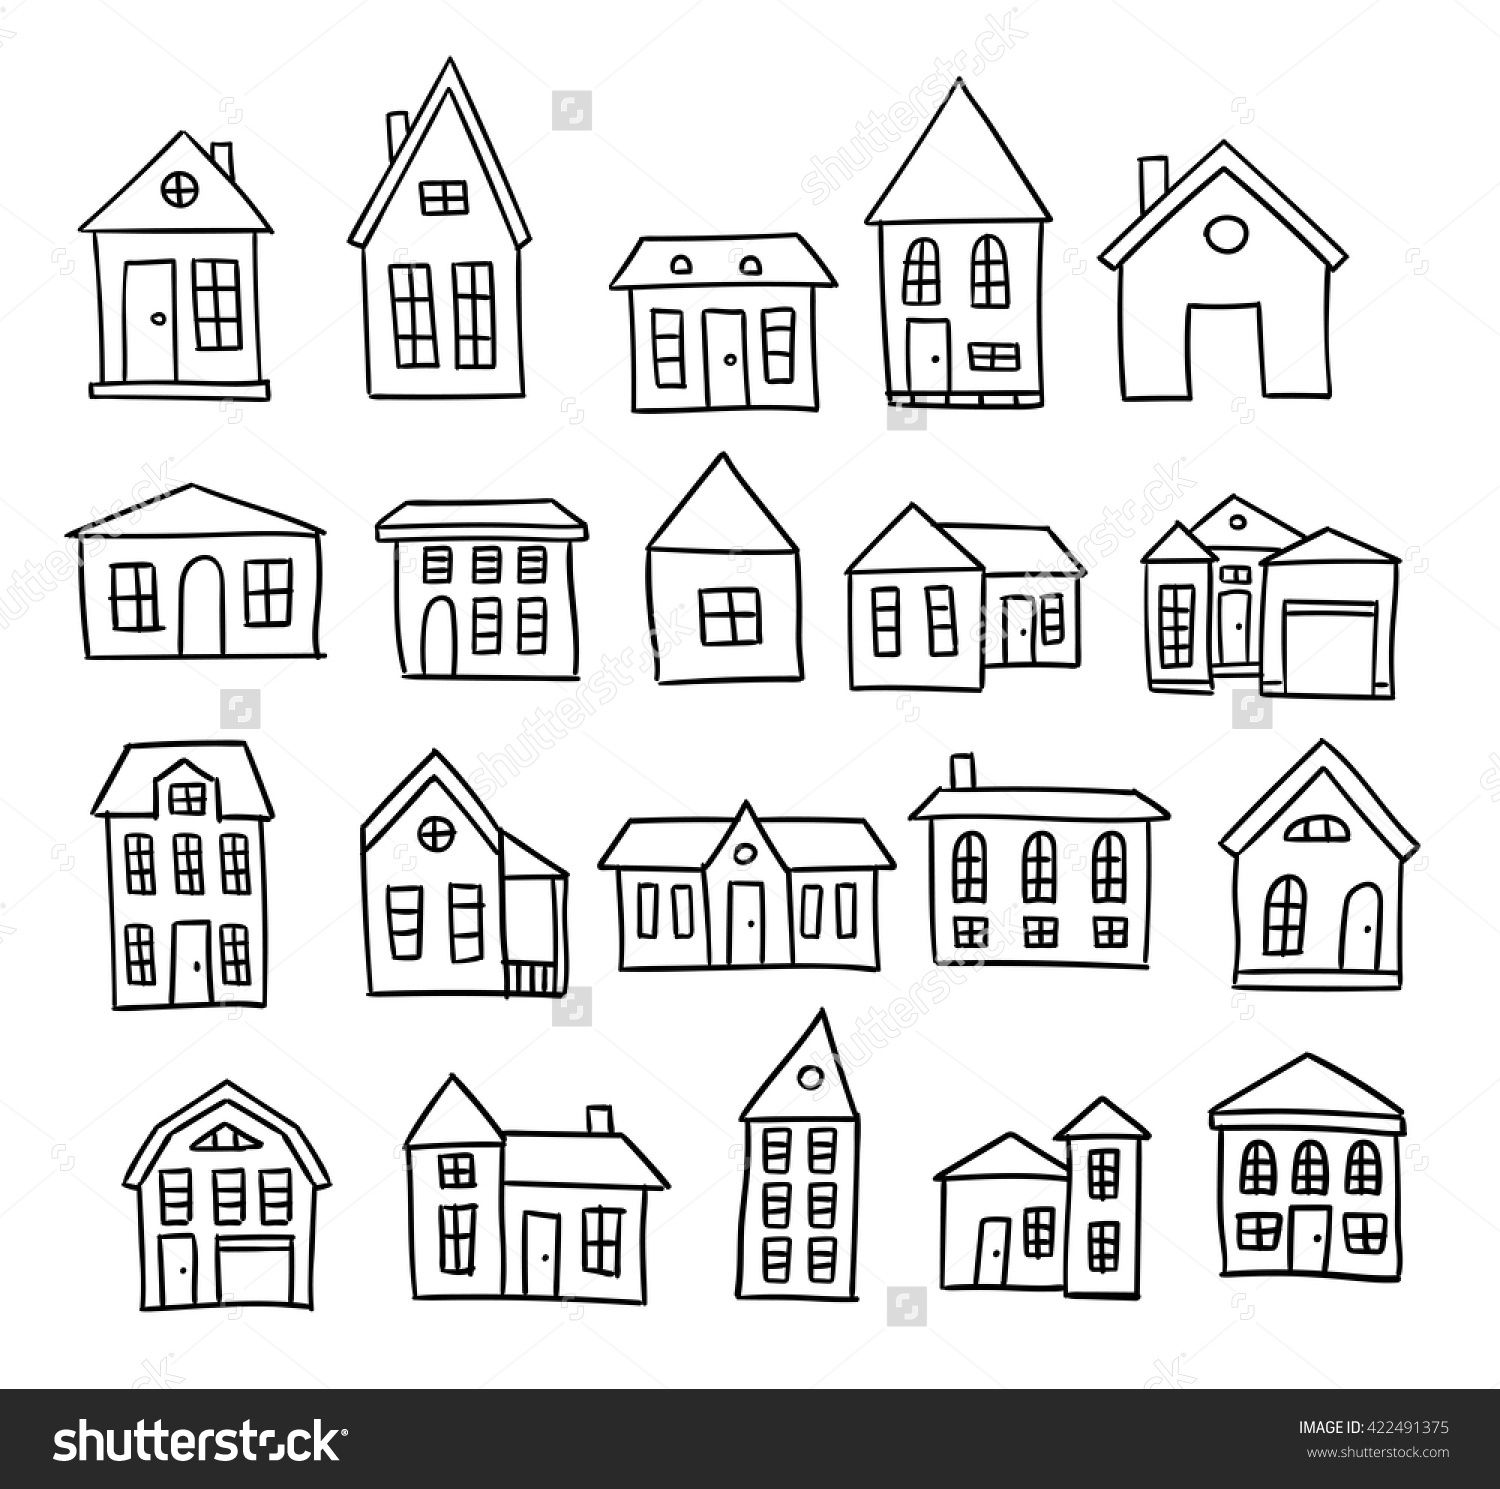 Hand Drawn House Vector Set How To Draw Hands Simple House